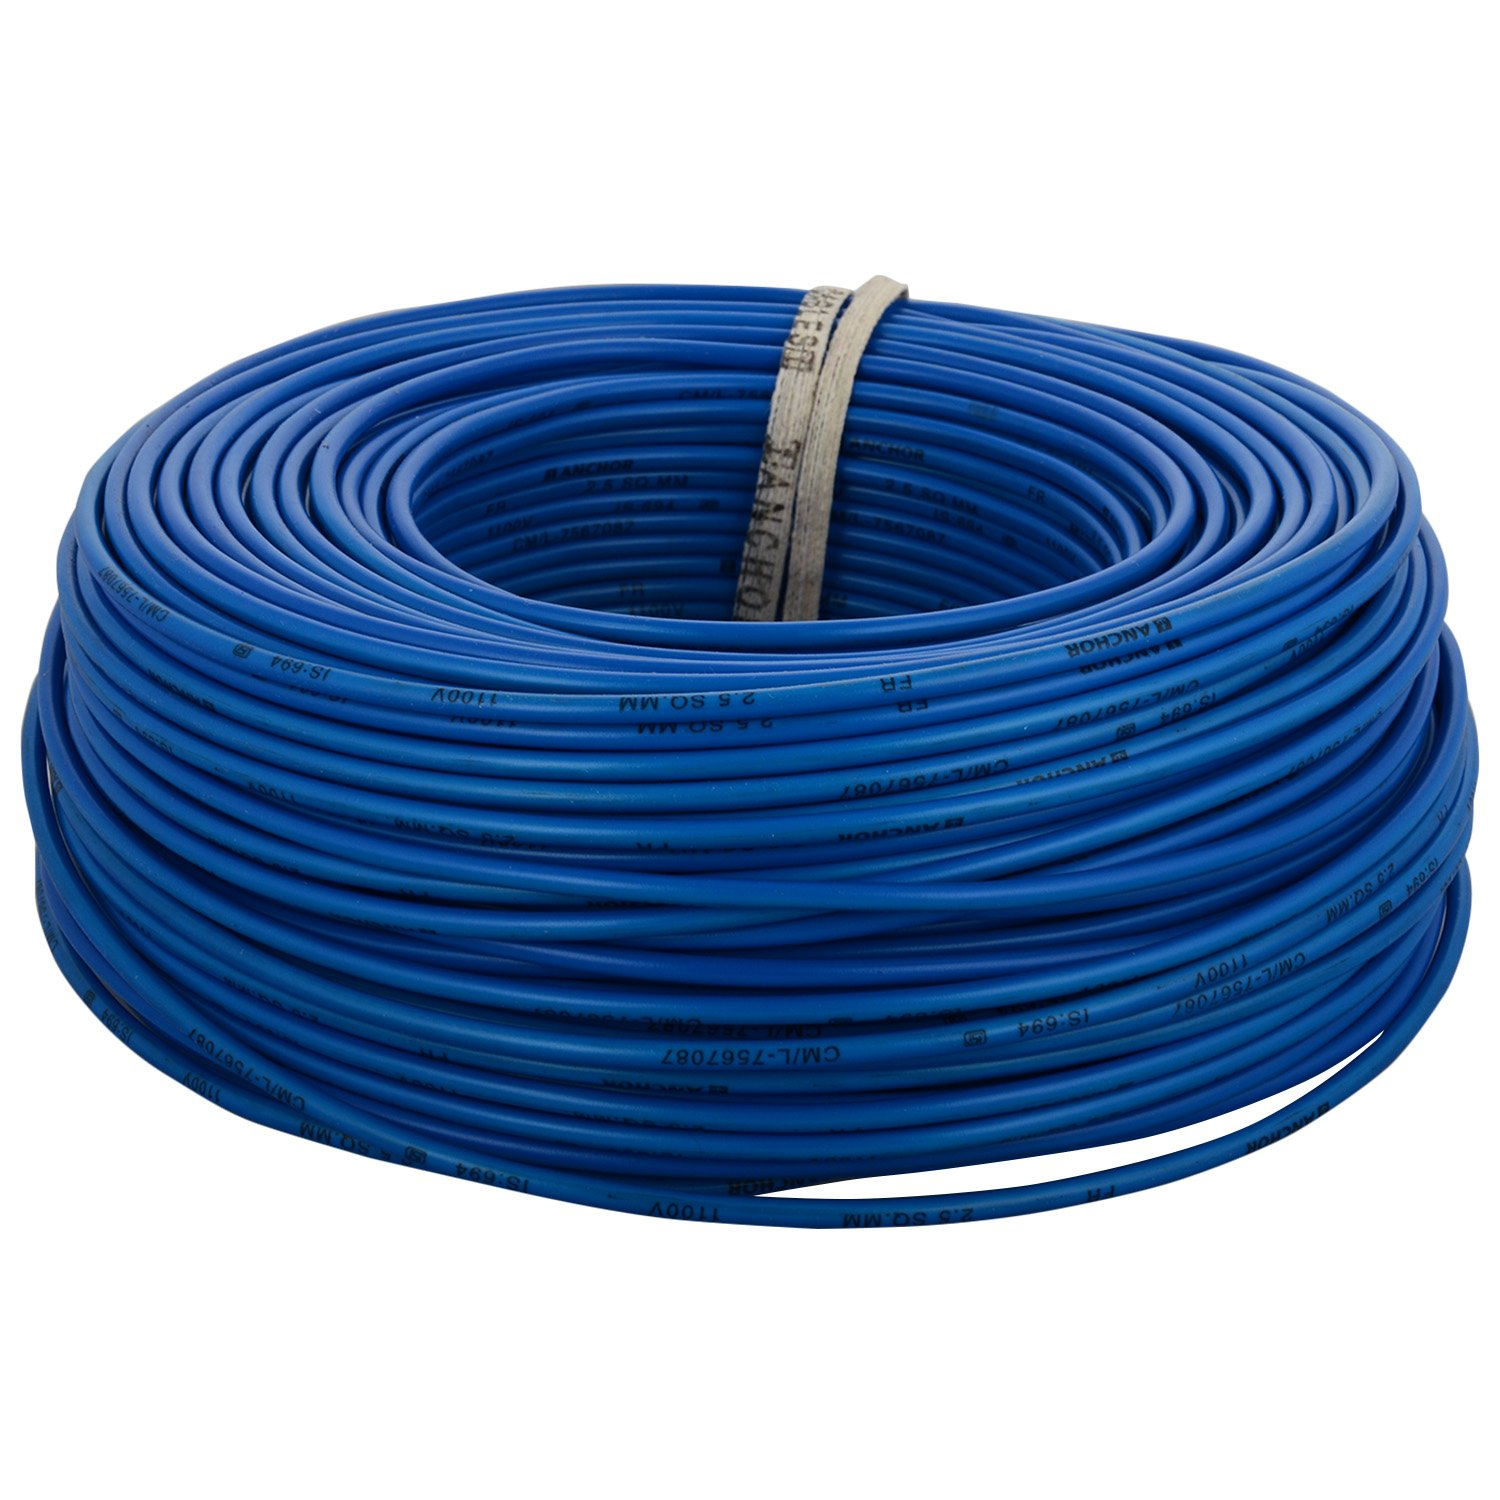 Cable buy electric cable 2 5 sq mm cable 1 5 sqmm wire product on - Anchor Insulated Copper Pvc Cable 2 5 Sq Mm Wire Blue Amazon In Amazon In